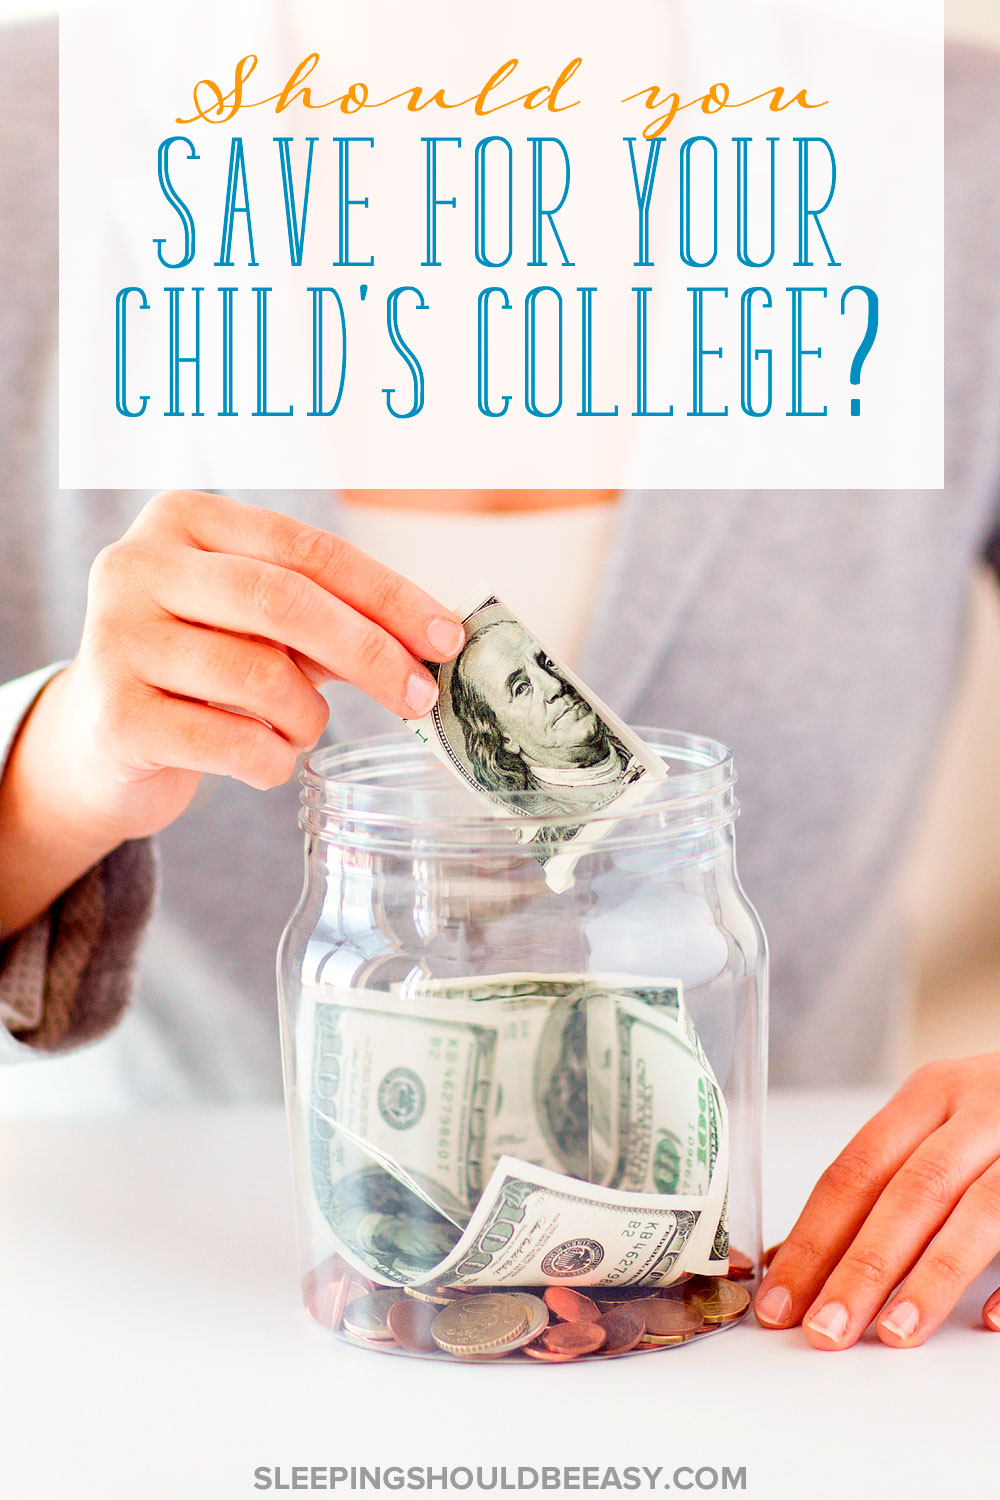 College costs a lot of money, but should you save for your child's college? Here are reasons why I do, then tell me whether you save for college or not.